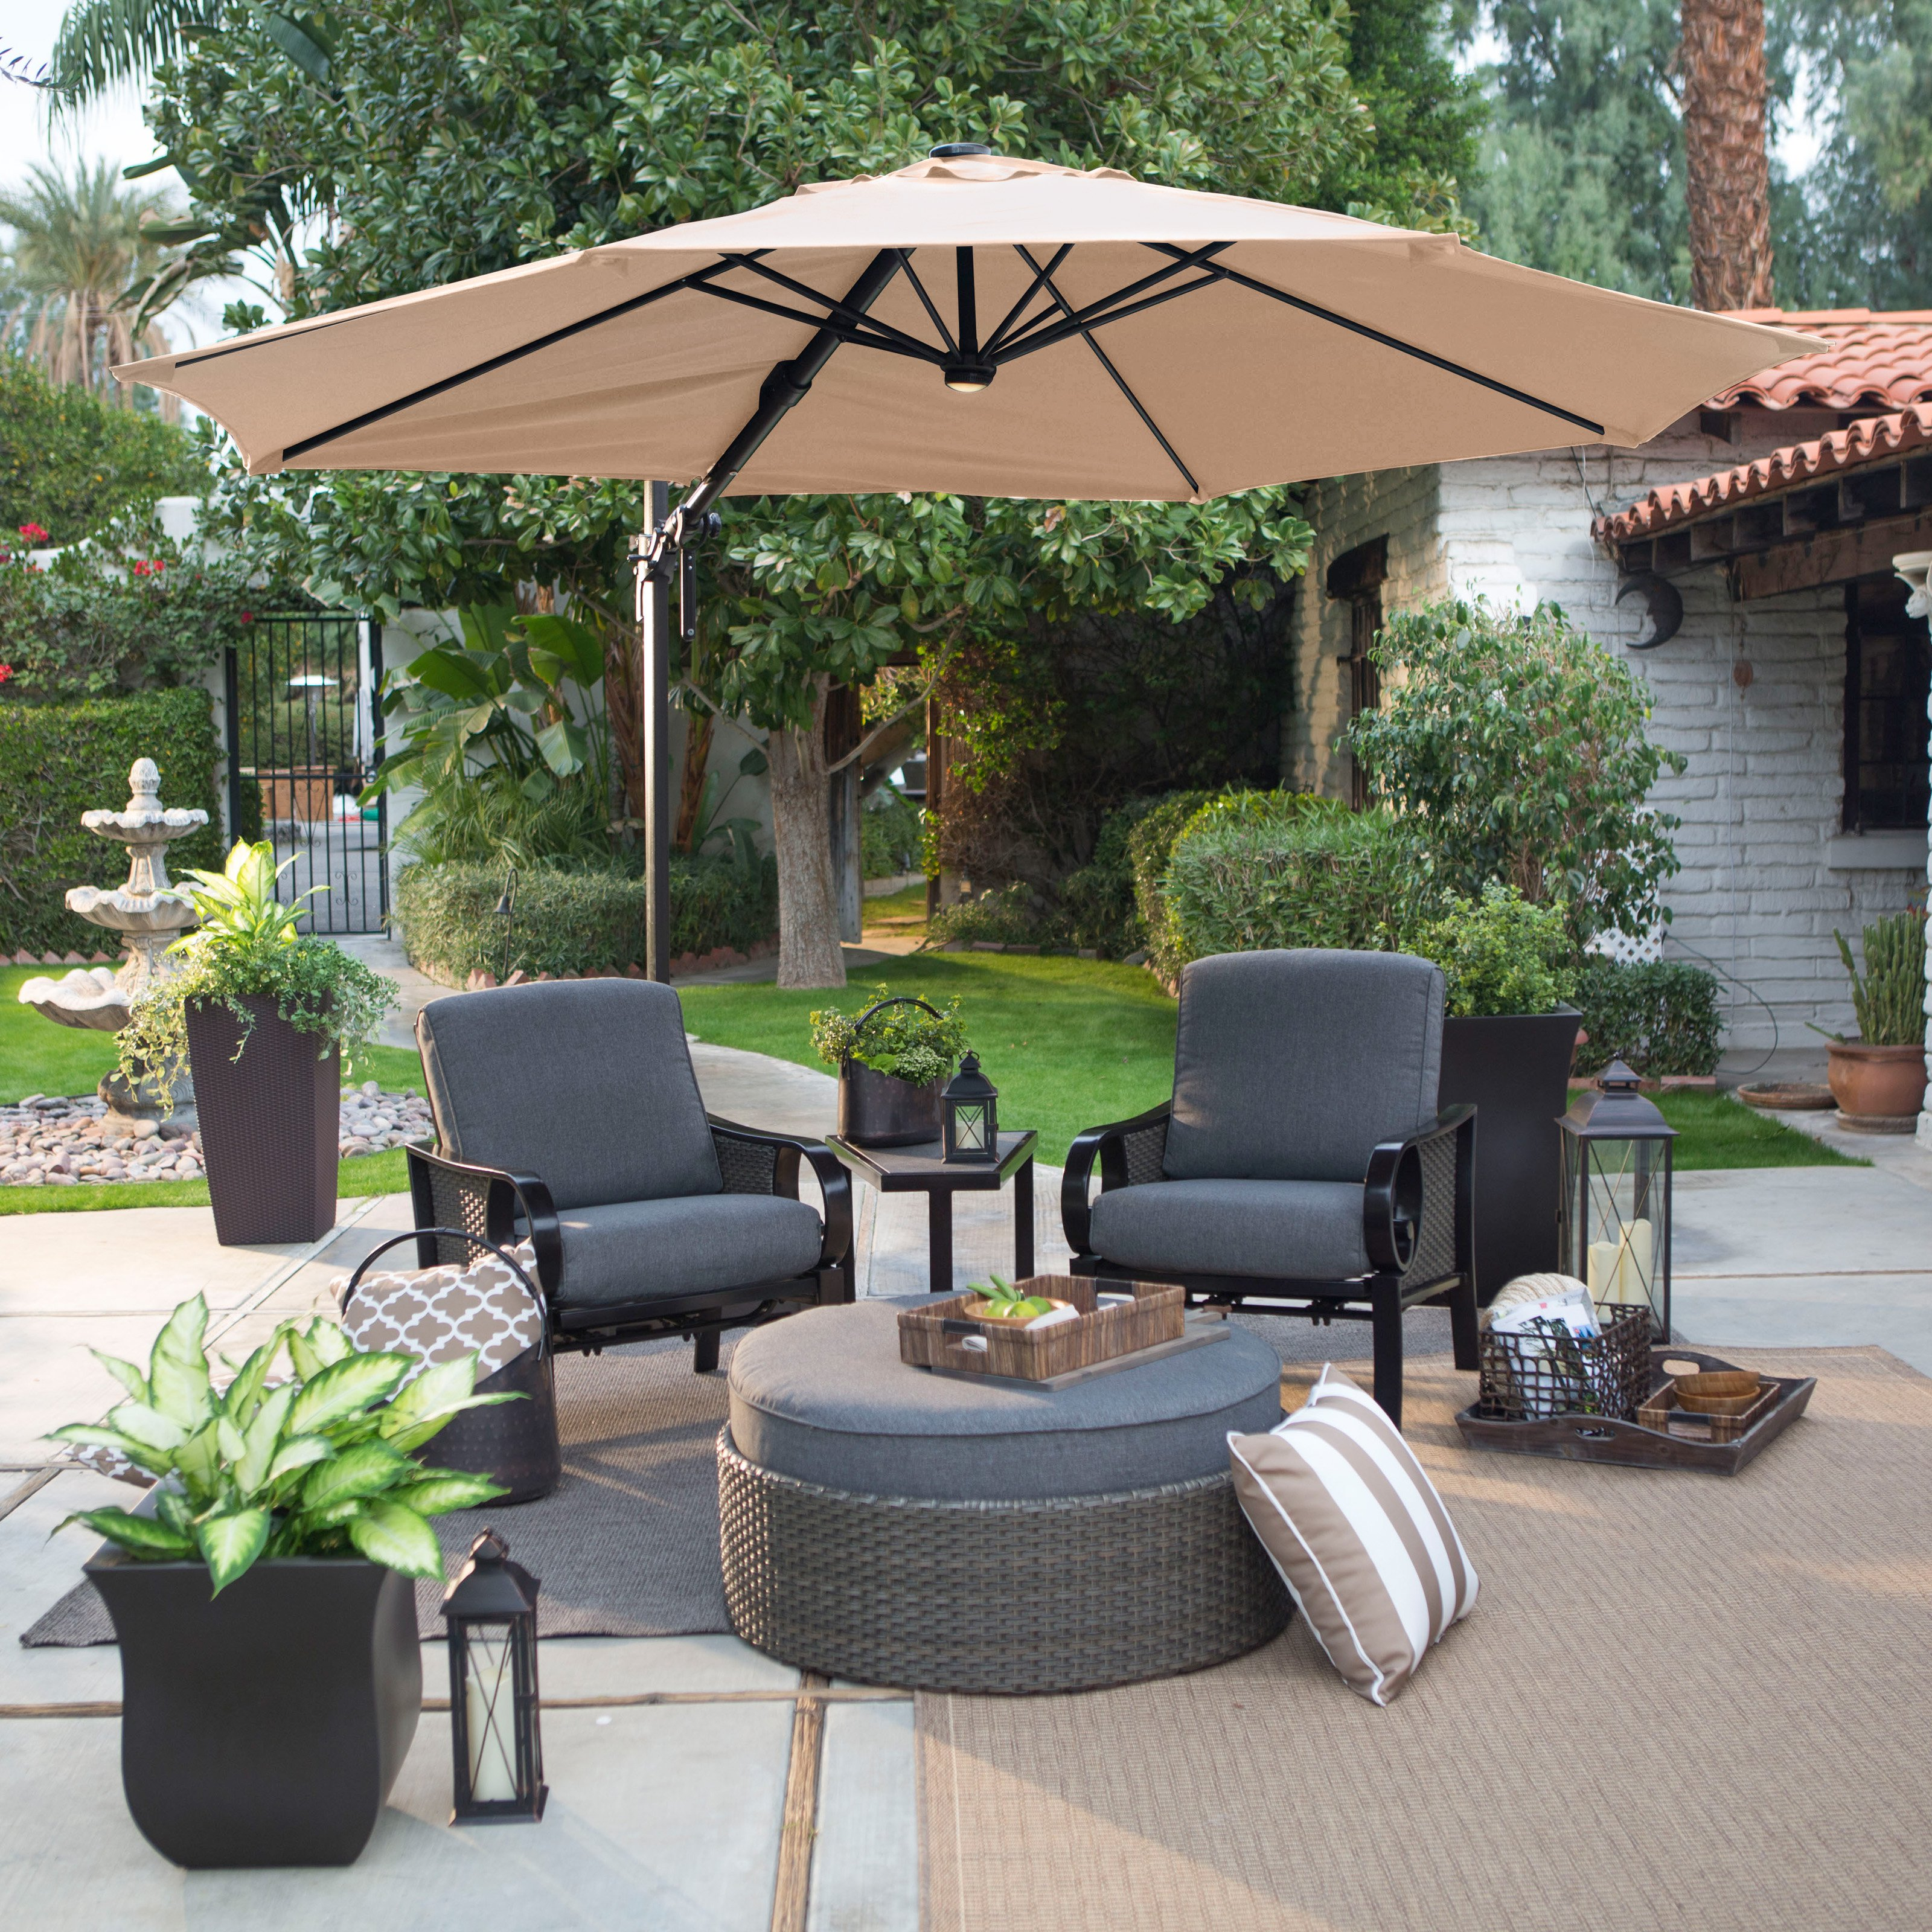 Backyard Stunning Costco fset Umbrella For Best Outdoor